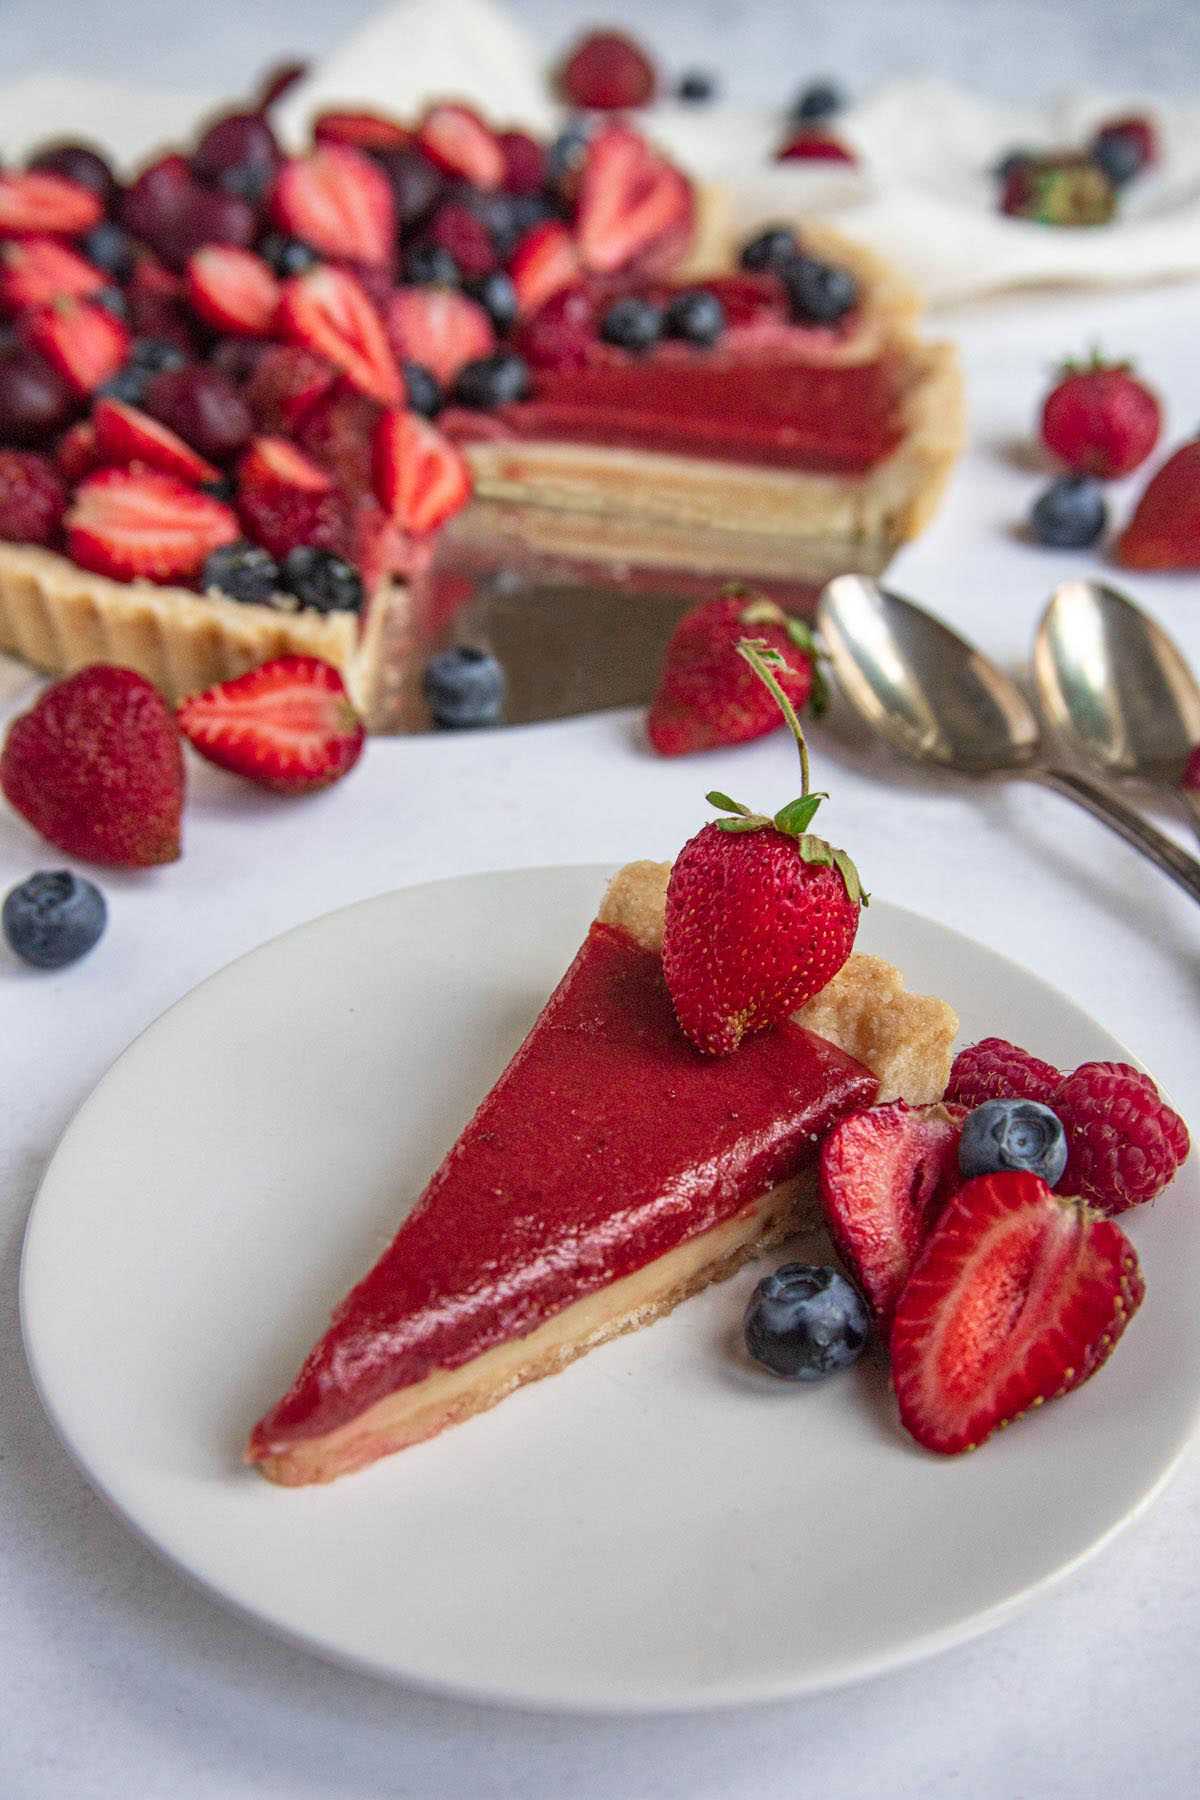 Strawberry and White Chocolate Tart slice on a dessert plate with main tart in the background